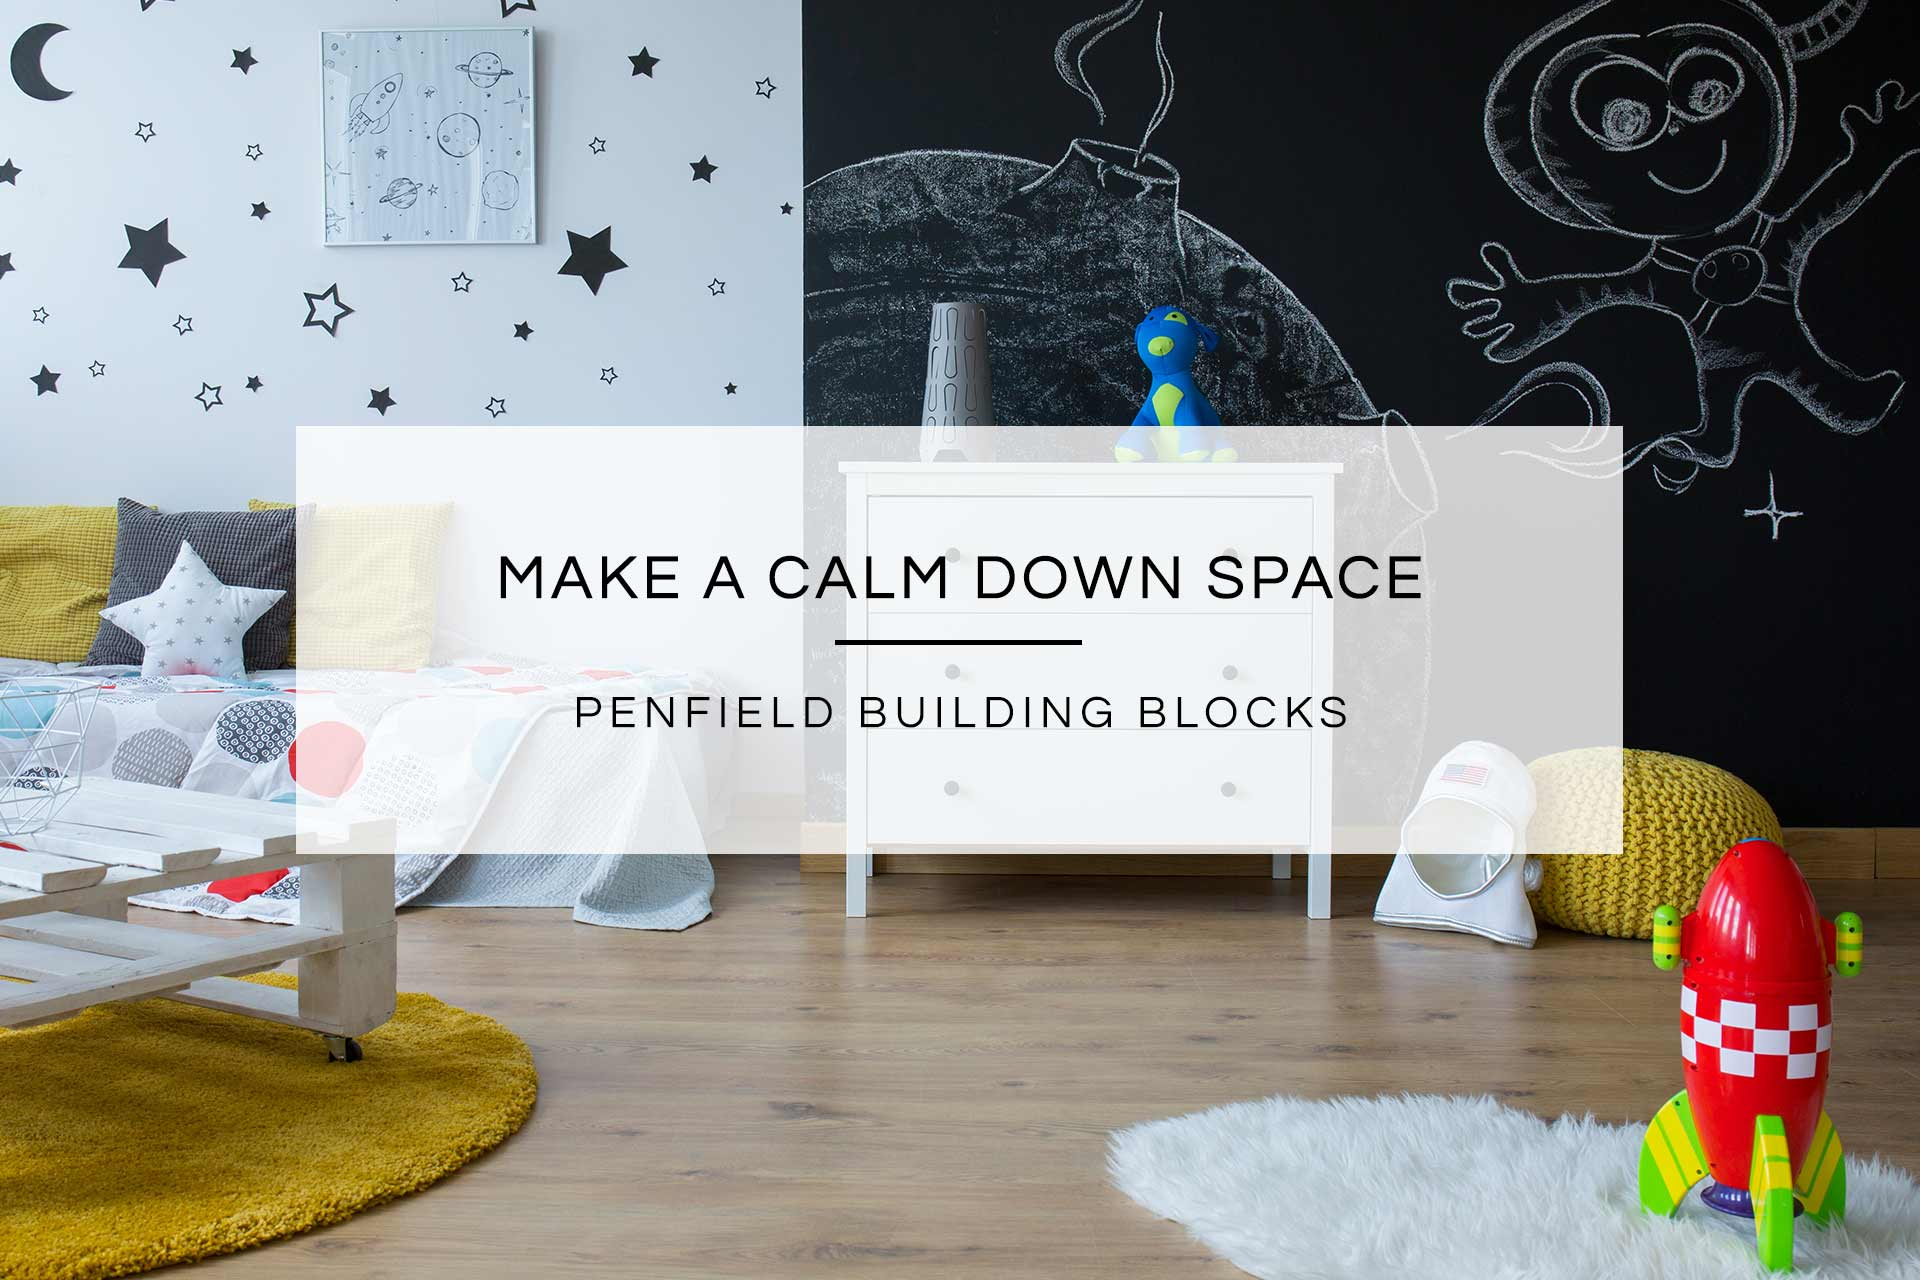 Make A Calm Down Space | Penfield Building Blocks